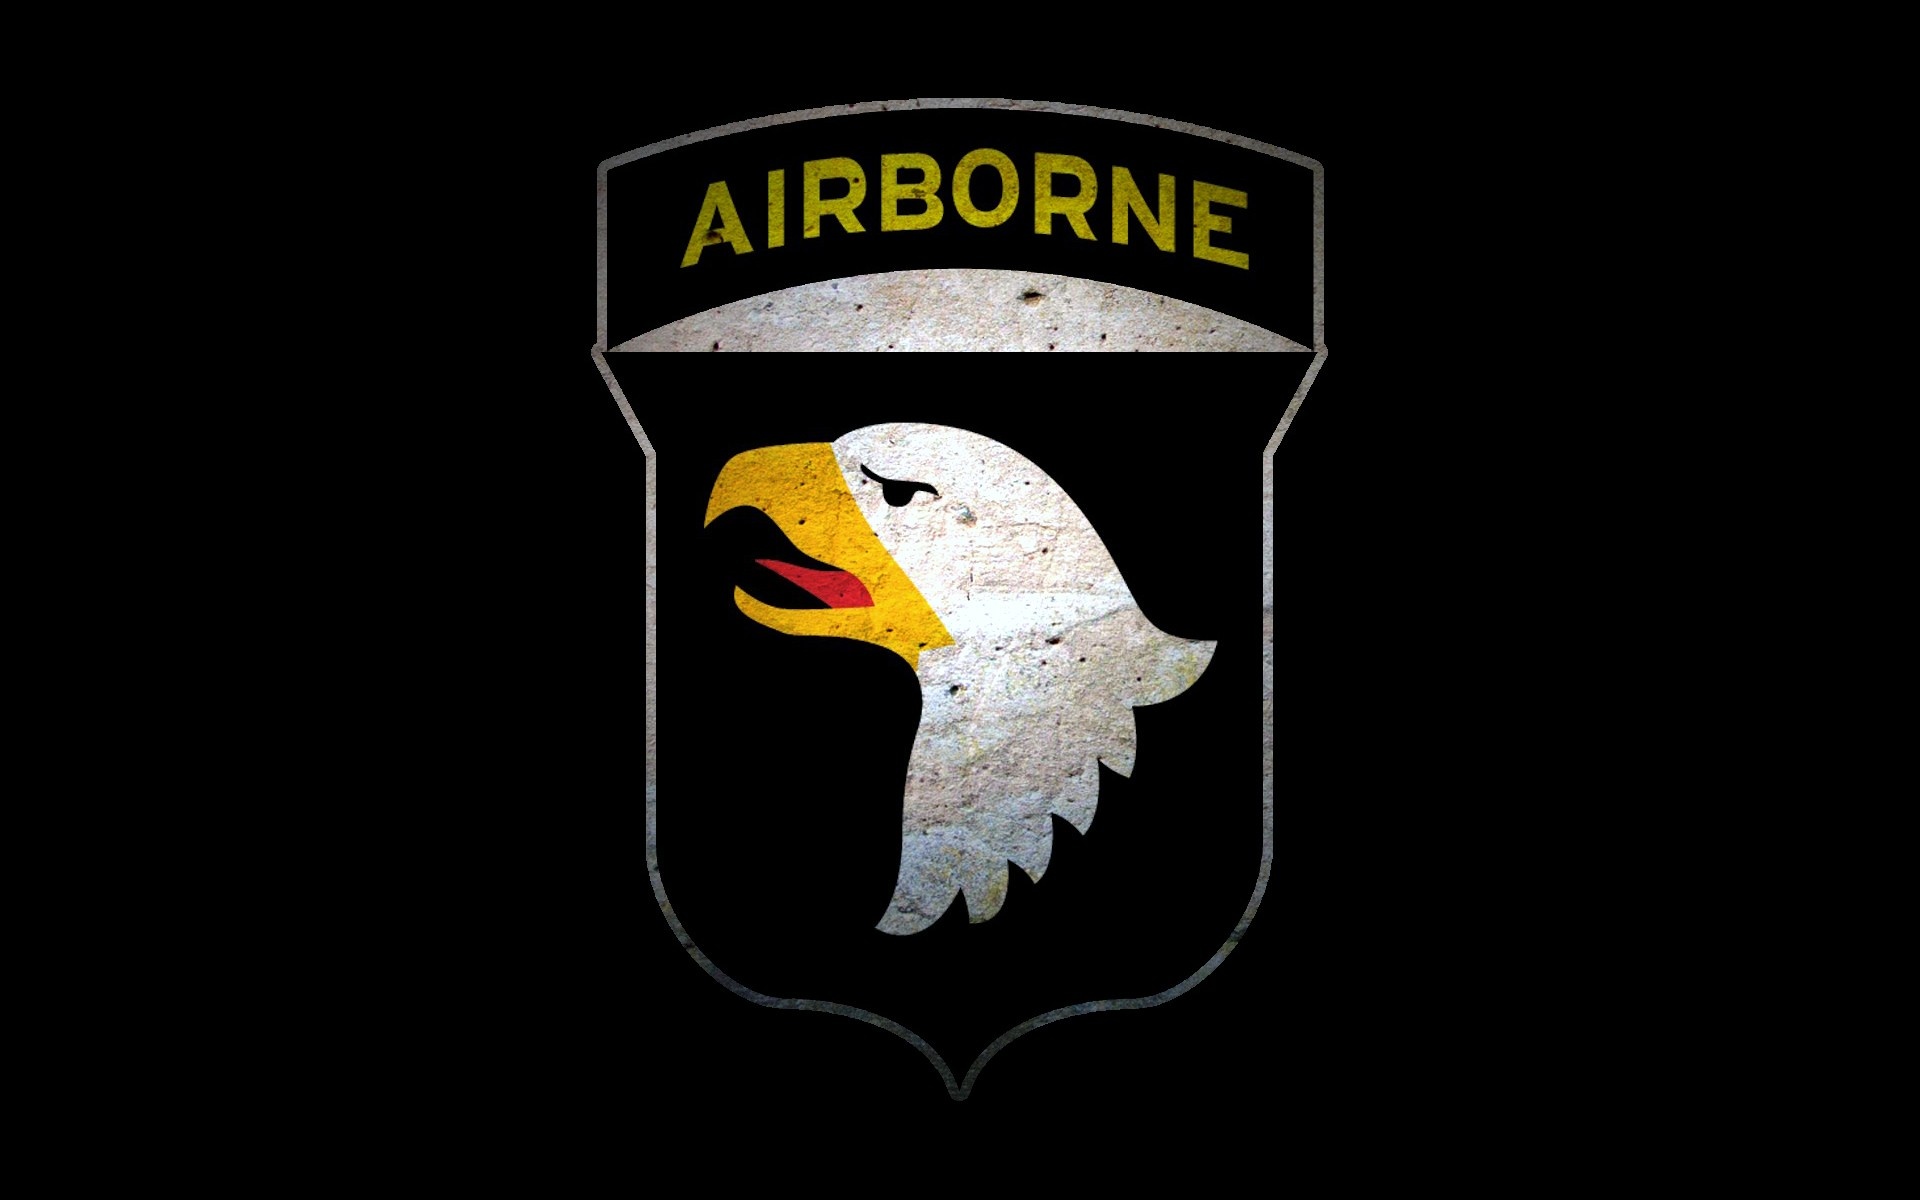 47+] 101st Airborne Wallpaper on WallpaperSafari